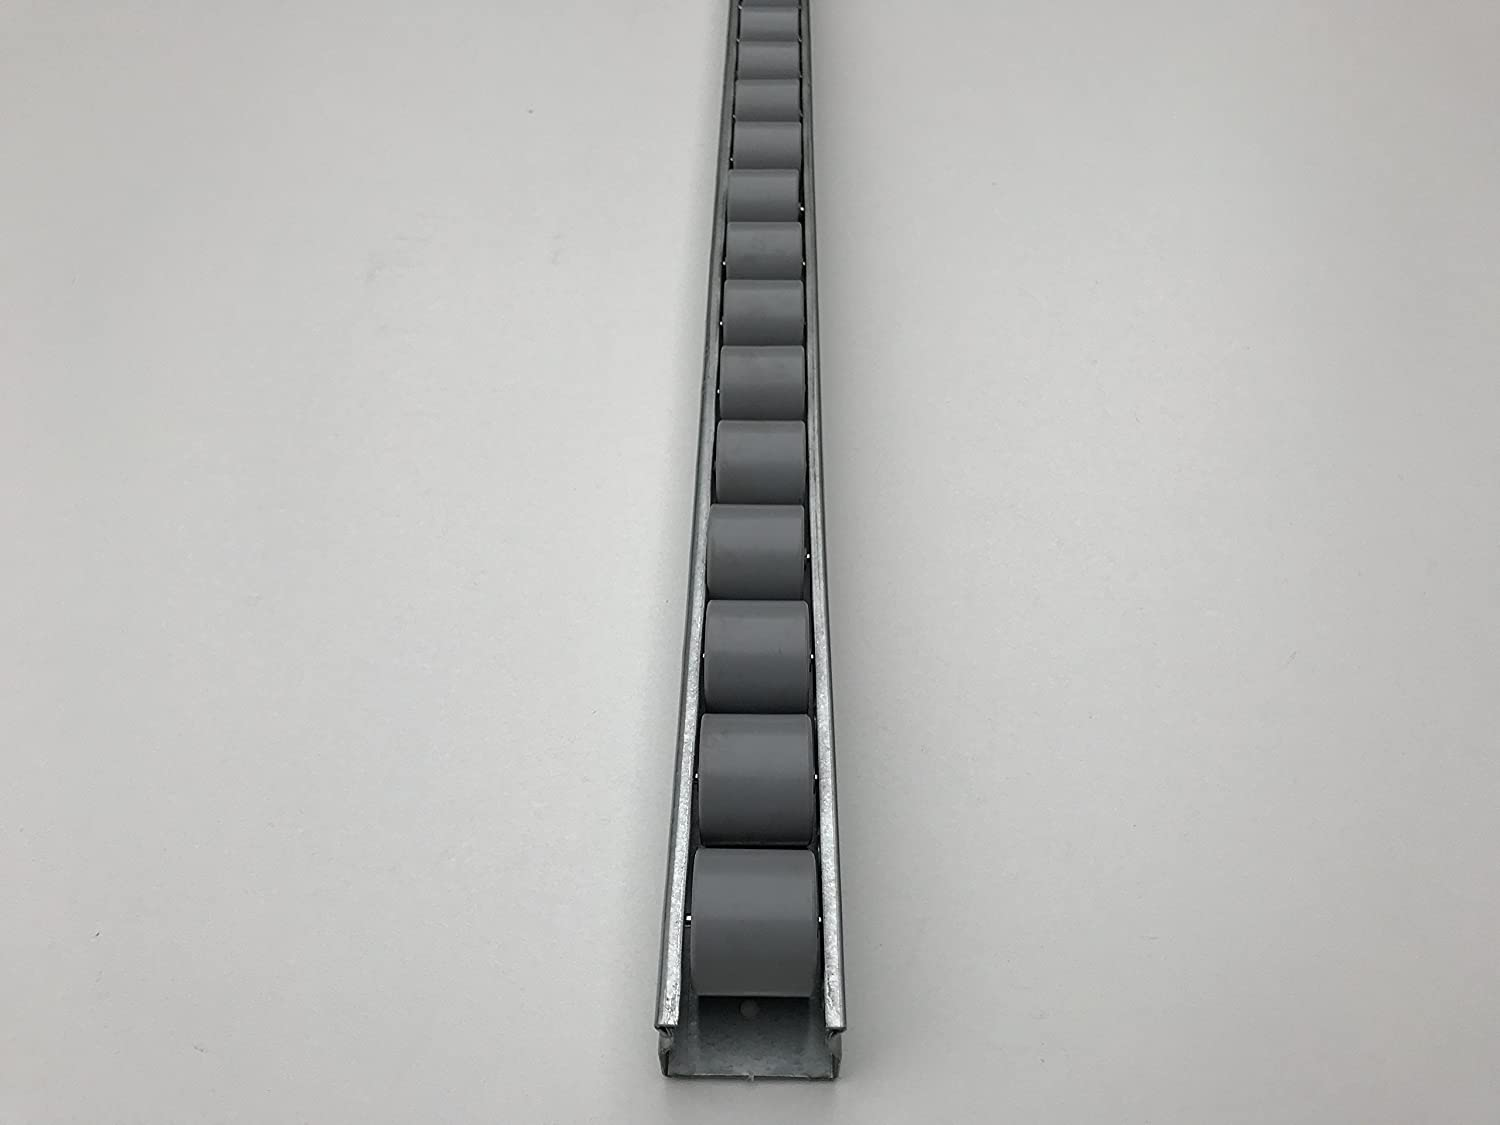 Roller Track Flow Rail Roller Gravity Conveyor with Plastic Wheels Dia 28 mm Length: 0.5 m